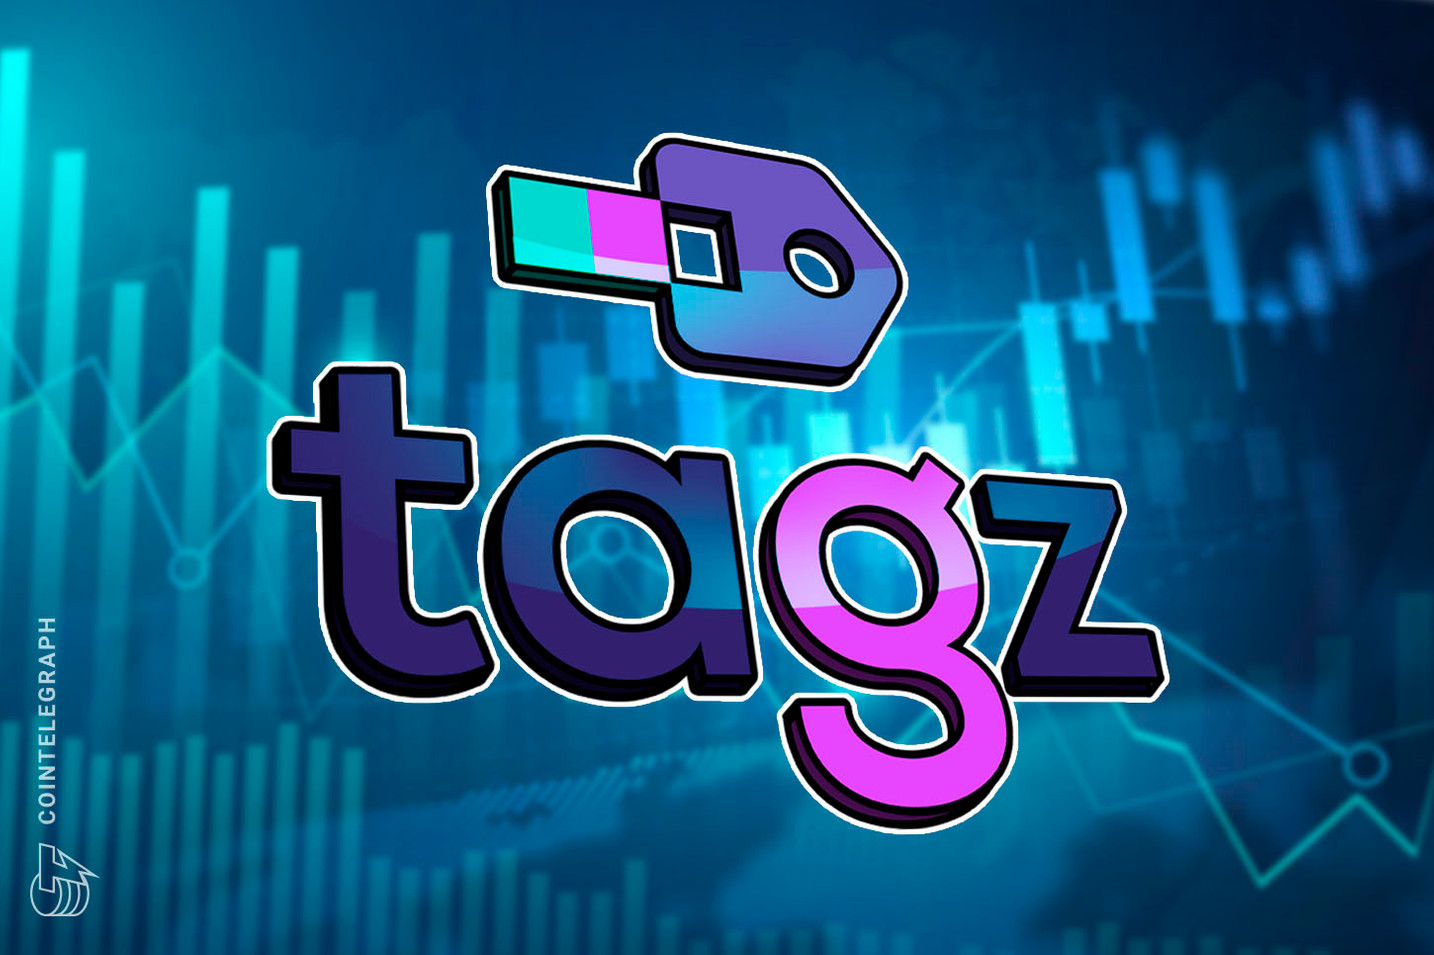 TAGZ Secures Itself #1 Spot as the World's Largest Crypto Exchange